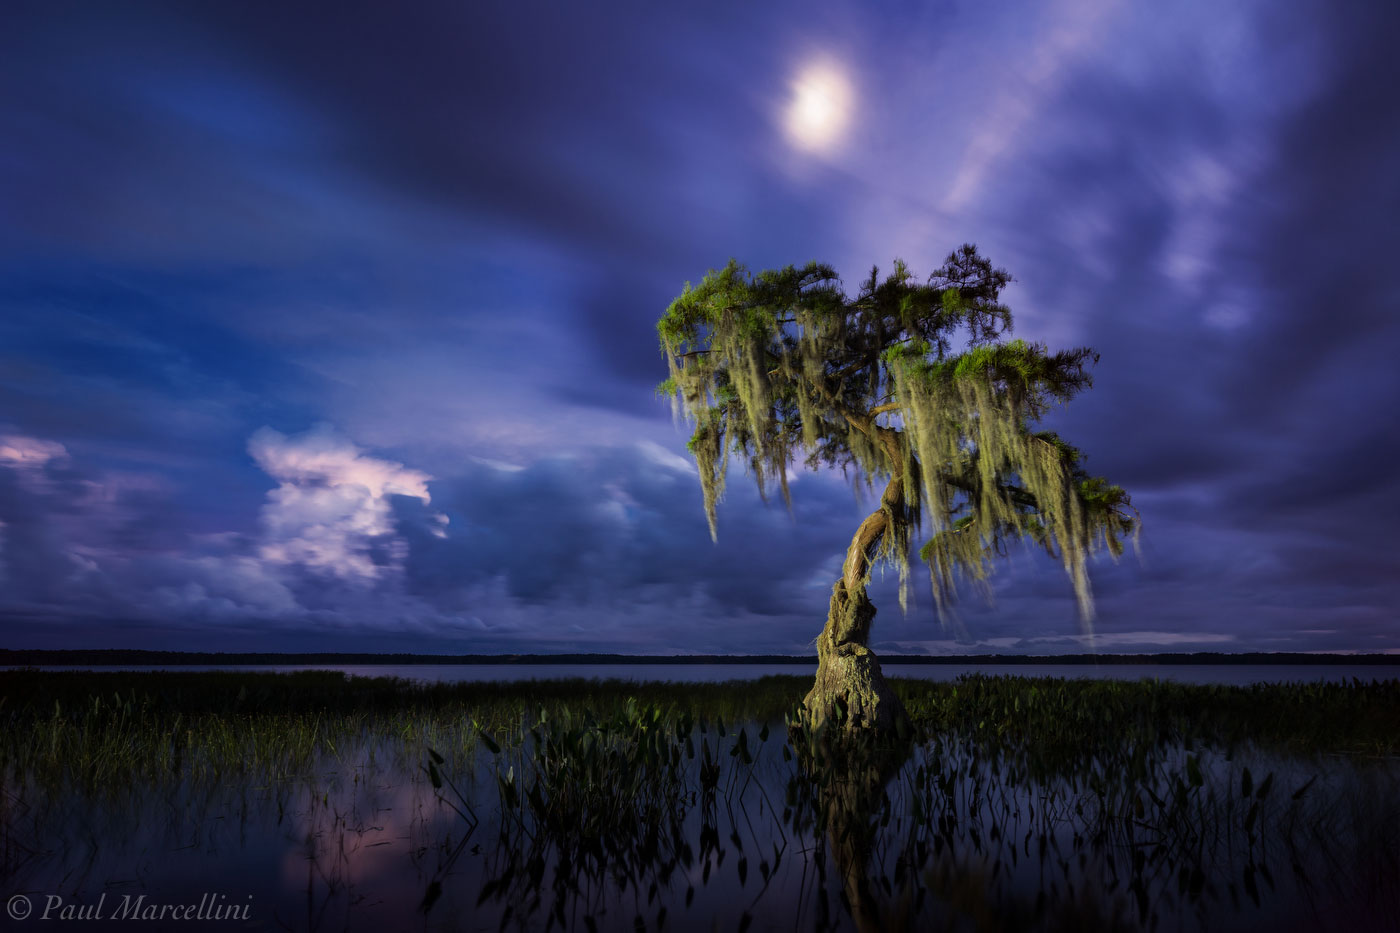 cypress, osceola national forest, florida, moon, north florida, nature, photography, photo